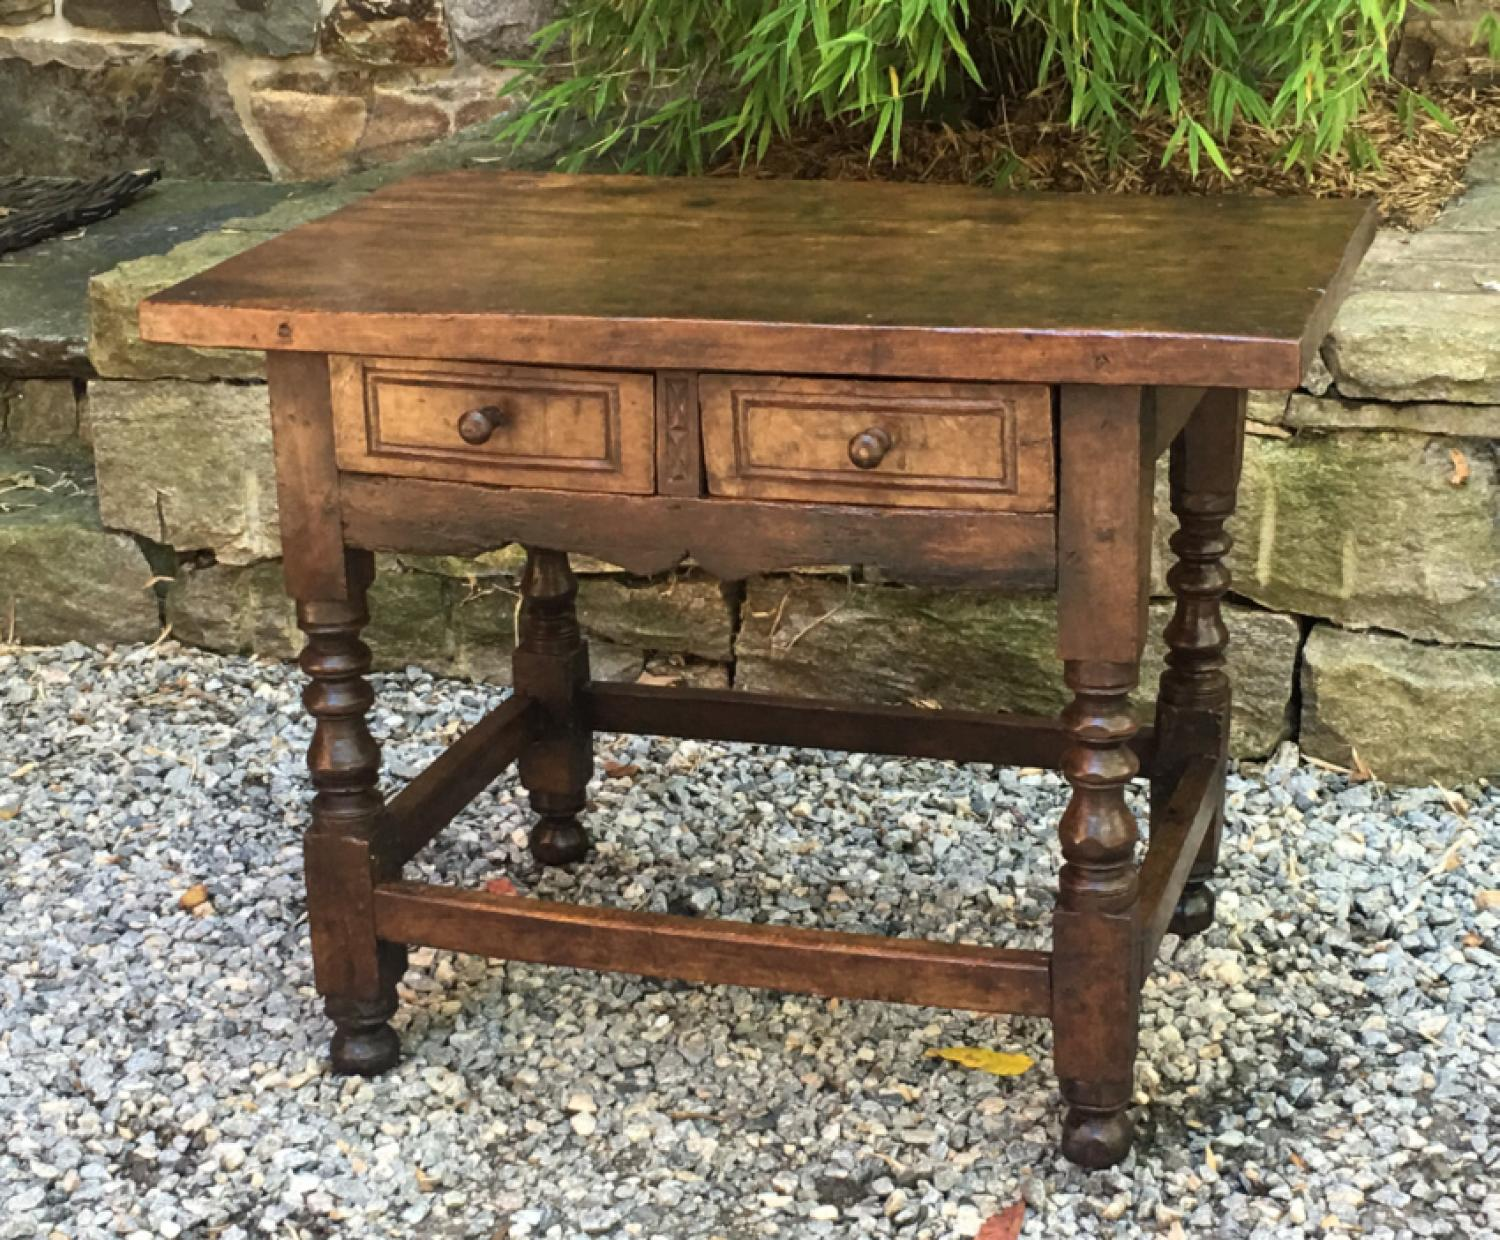 Baroque period walnut work table c1680